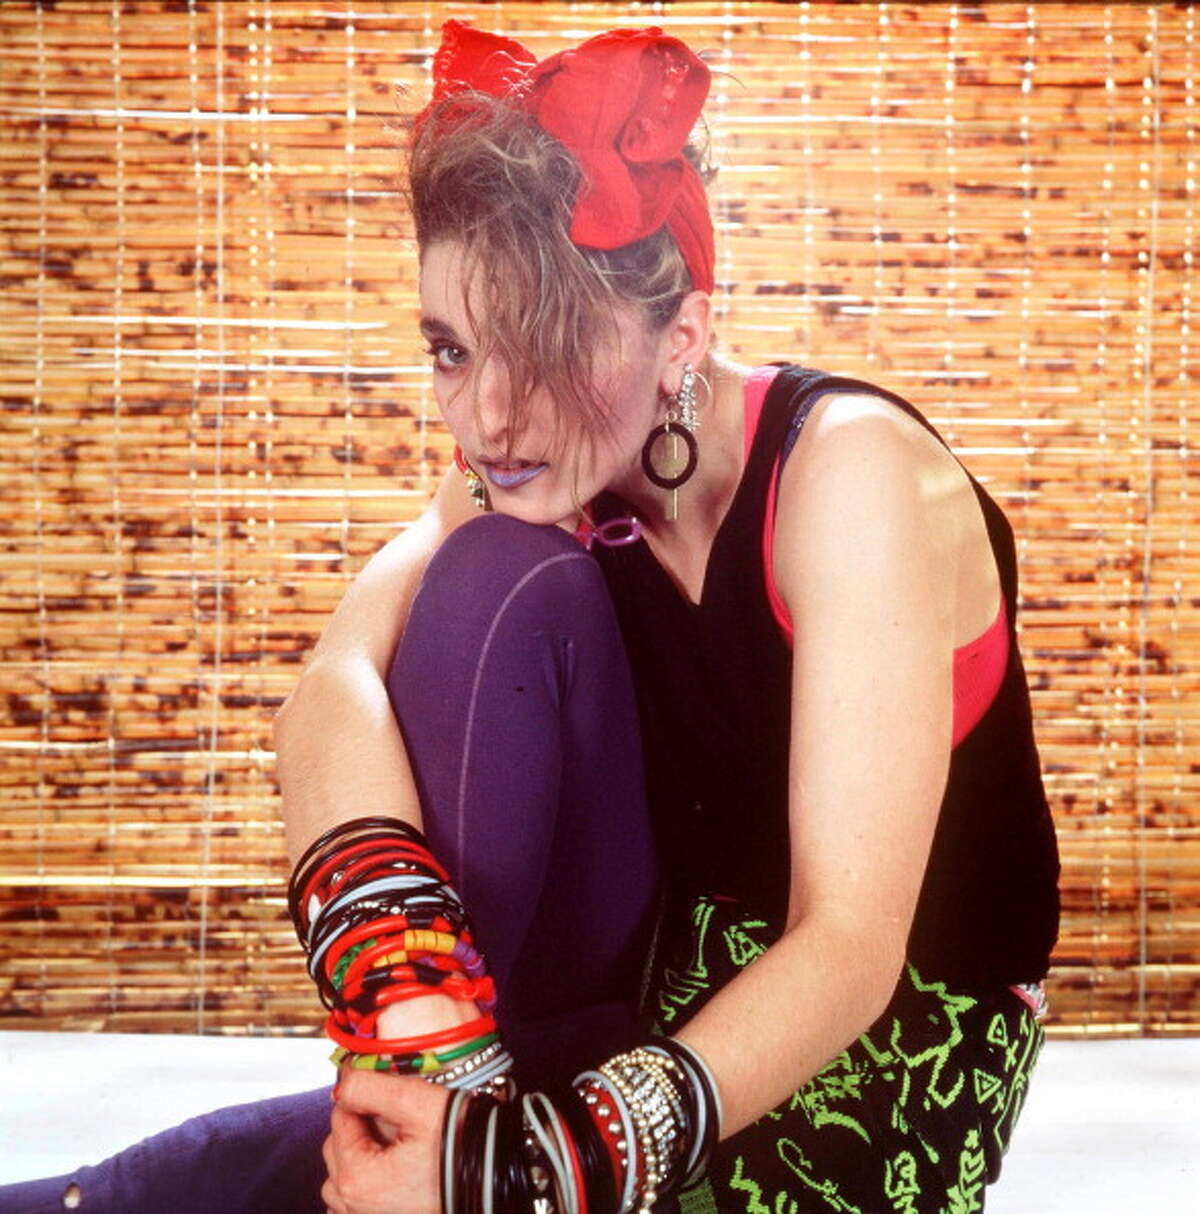 1984 - Madonna strikes a pose in NYC, rocking the '80s thrift-shop, club-kid look.